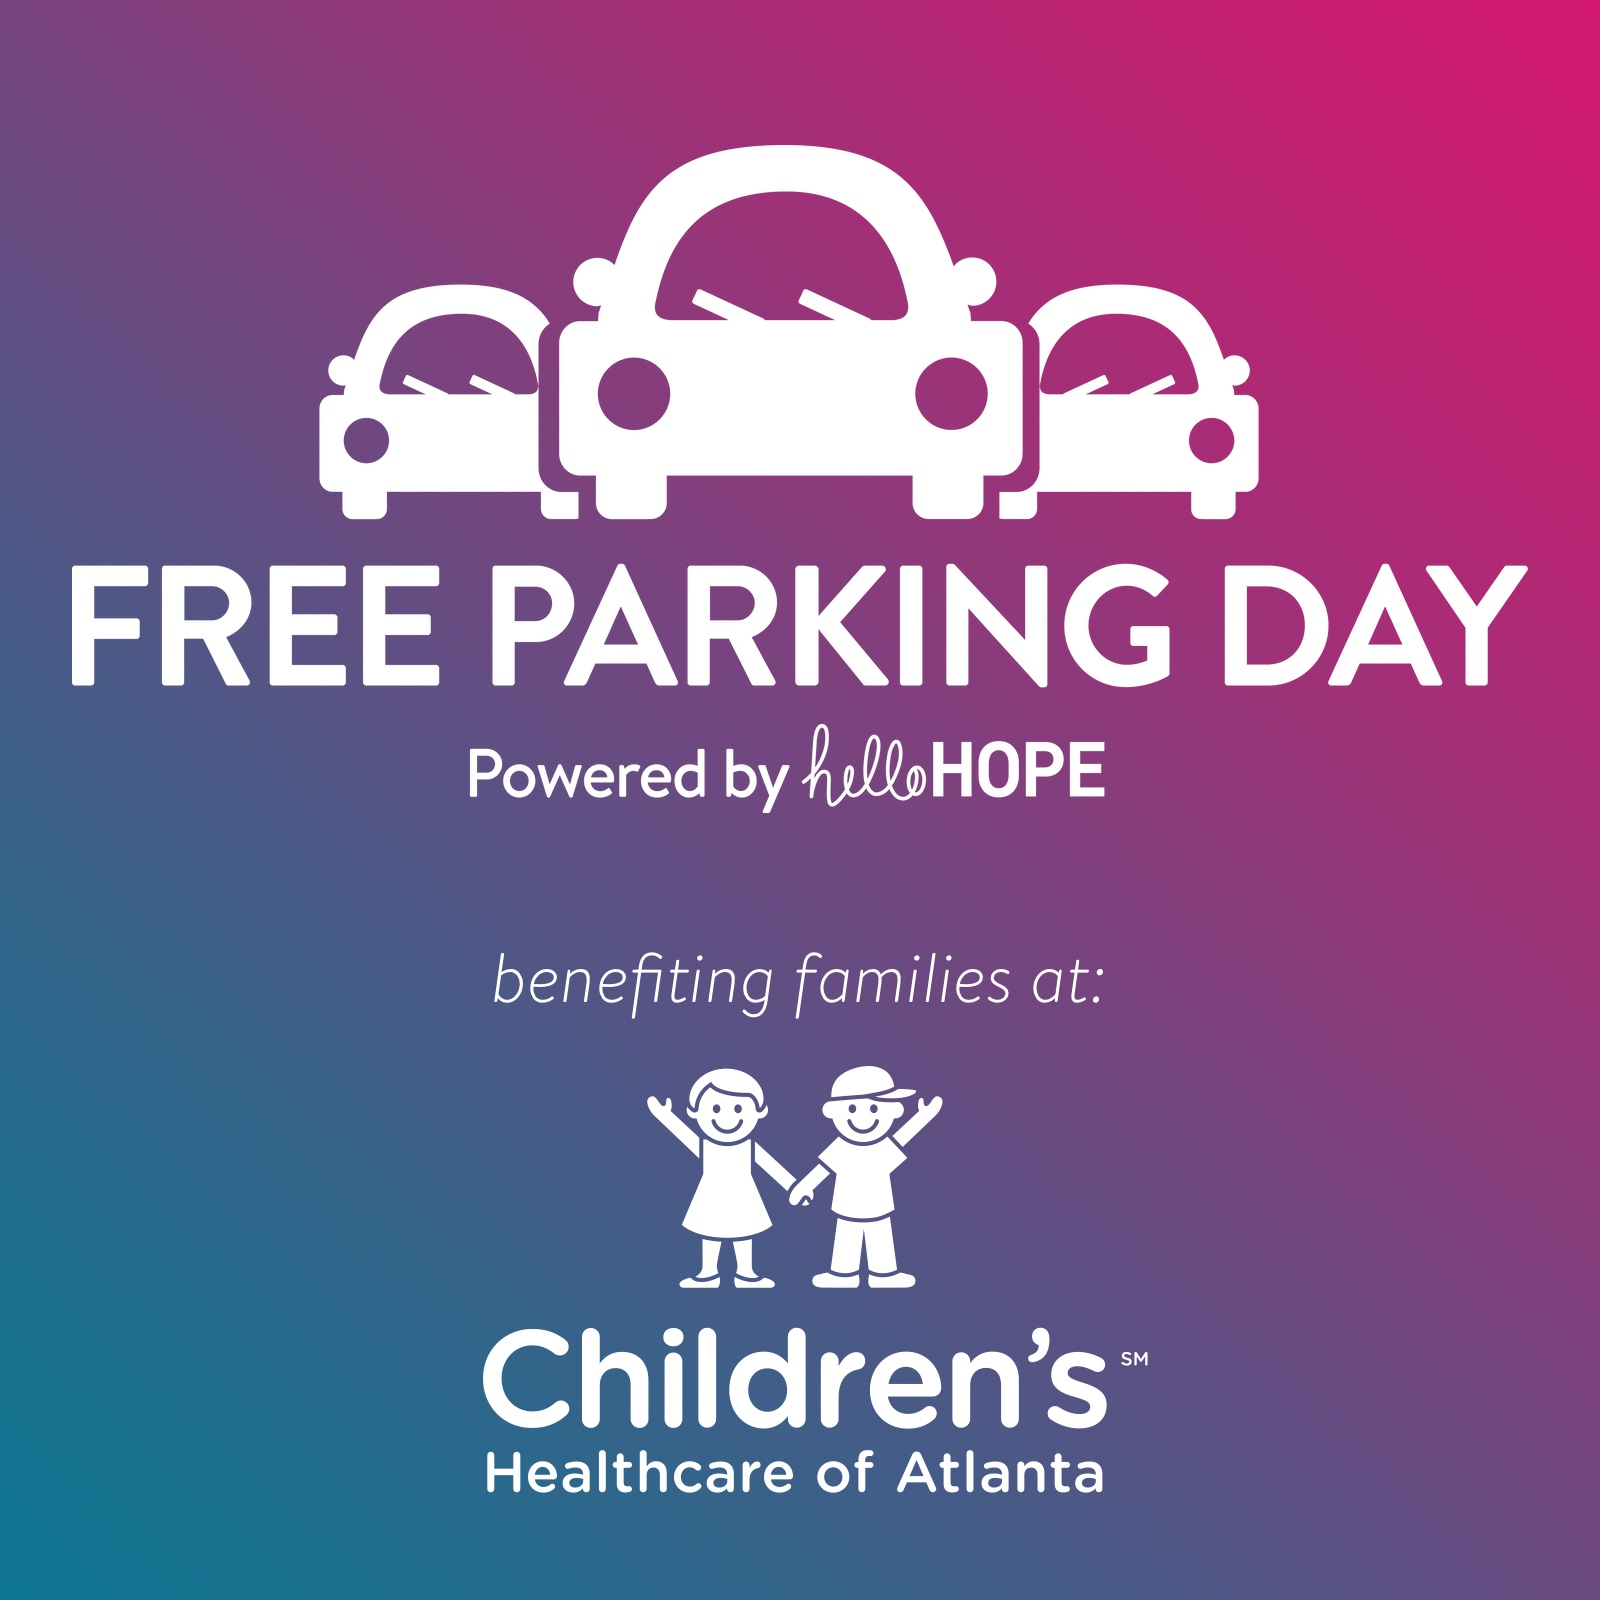 Free Parking Day powered by helloHOPE, benefitting Children's Healthcare of Atlanta